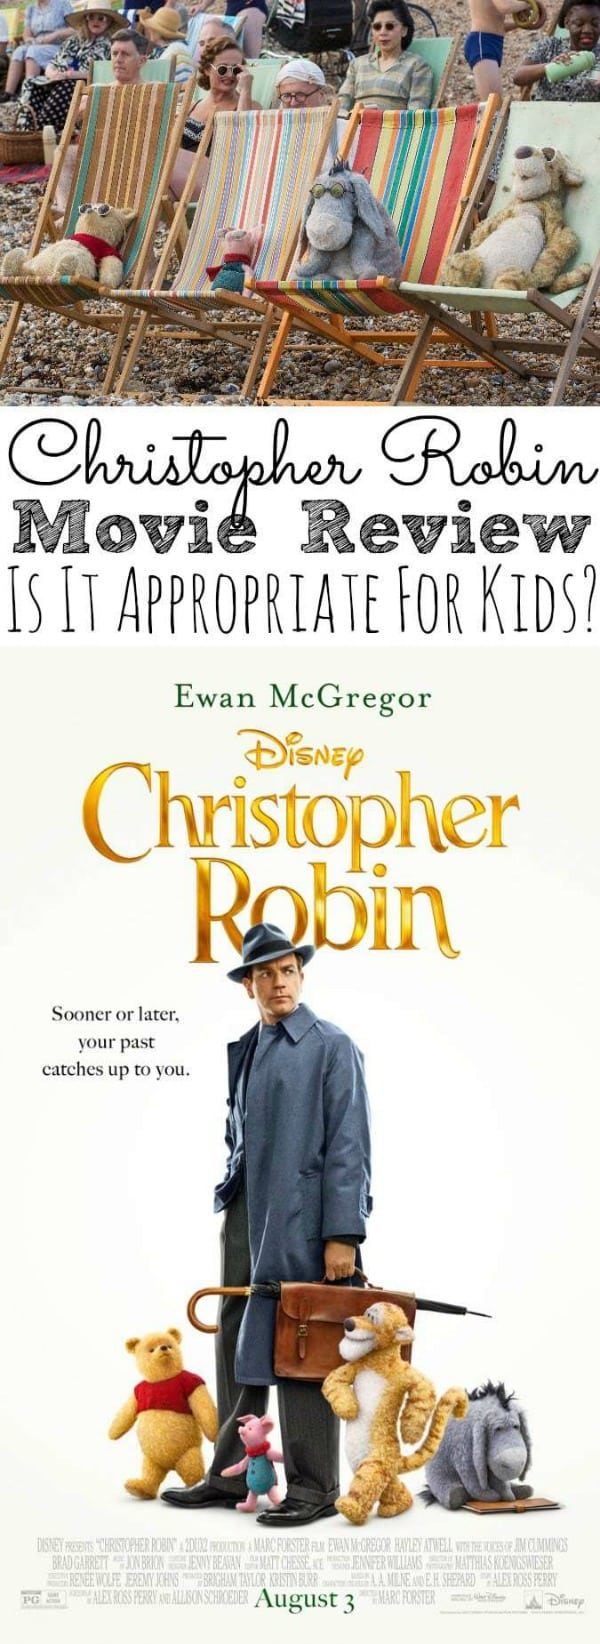 Disney Christopher Robin Movie Review | Is It Appropriate For Kids.jpeg